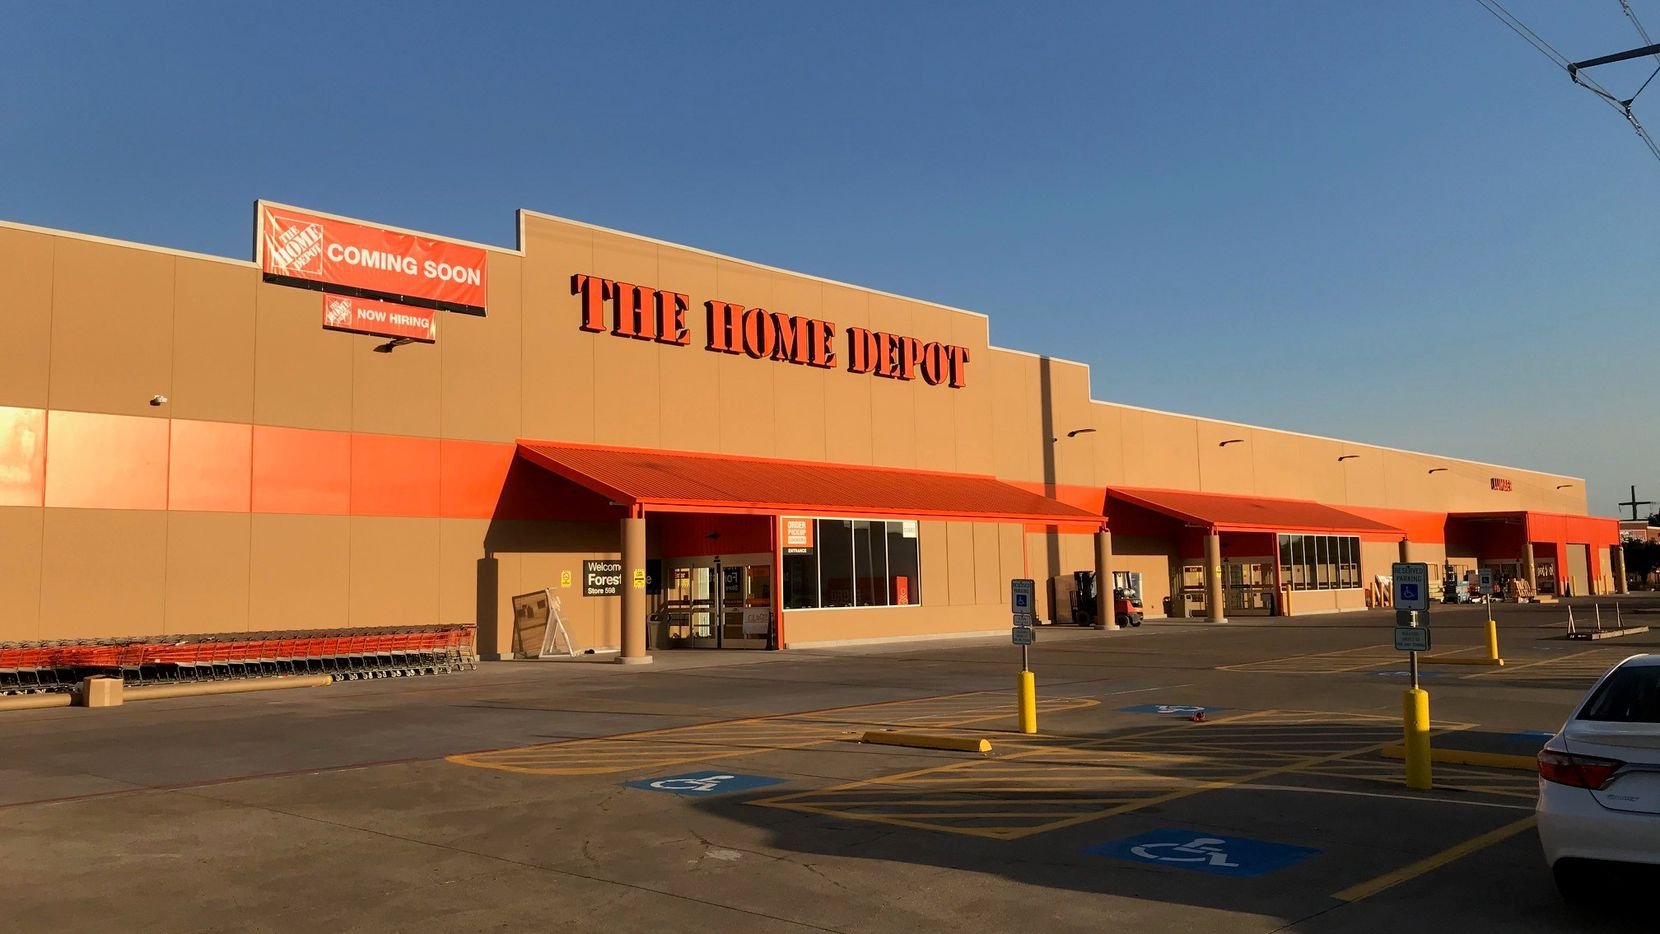 A rebuilt Home Depot store on Forest Lane just east of North Central Expressway in Dallas. It was damaged during the Oct. 20, 2019, tornadoes and reopened last fall.